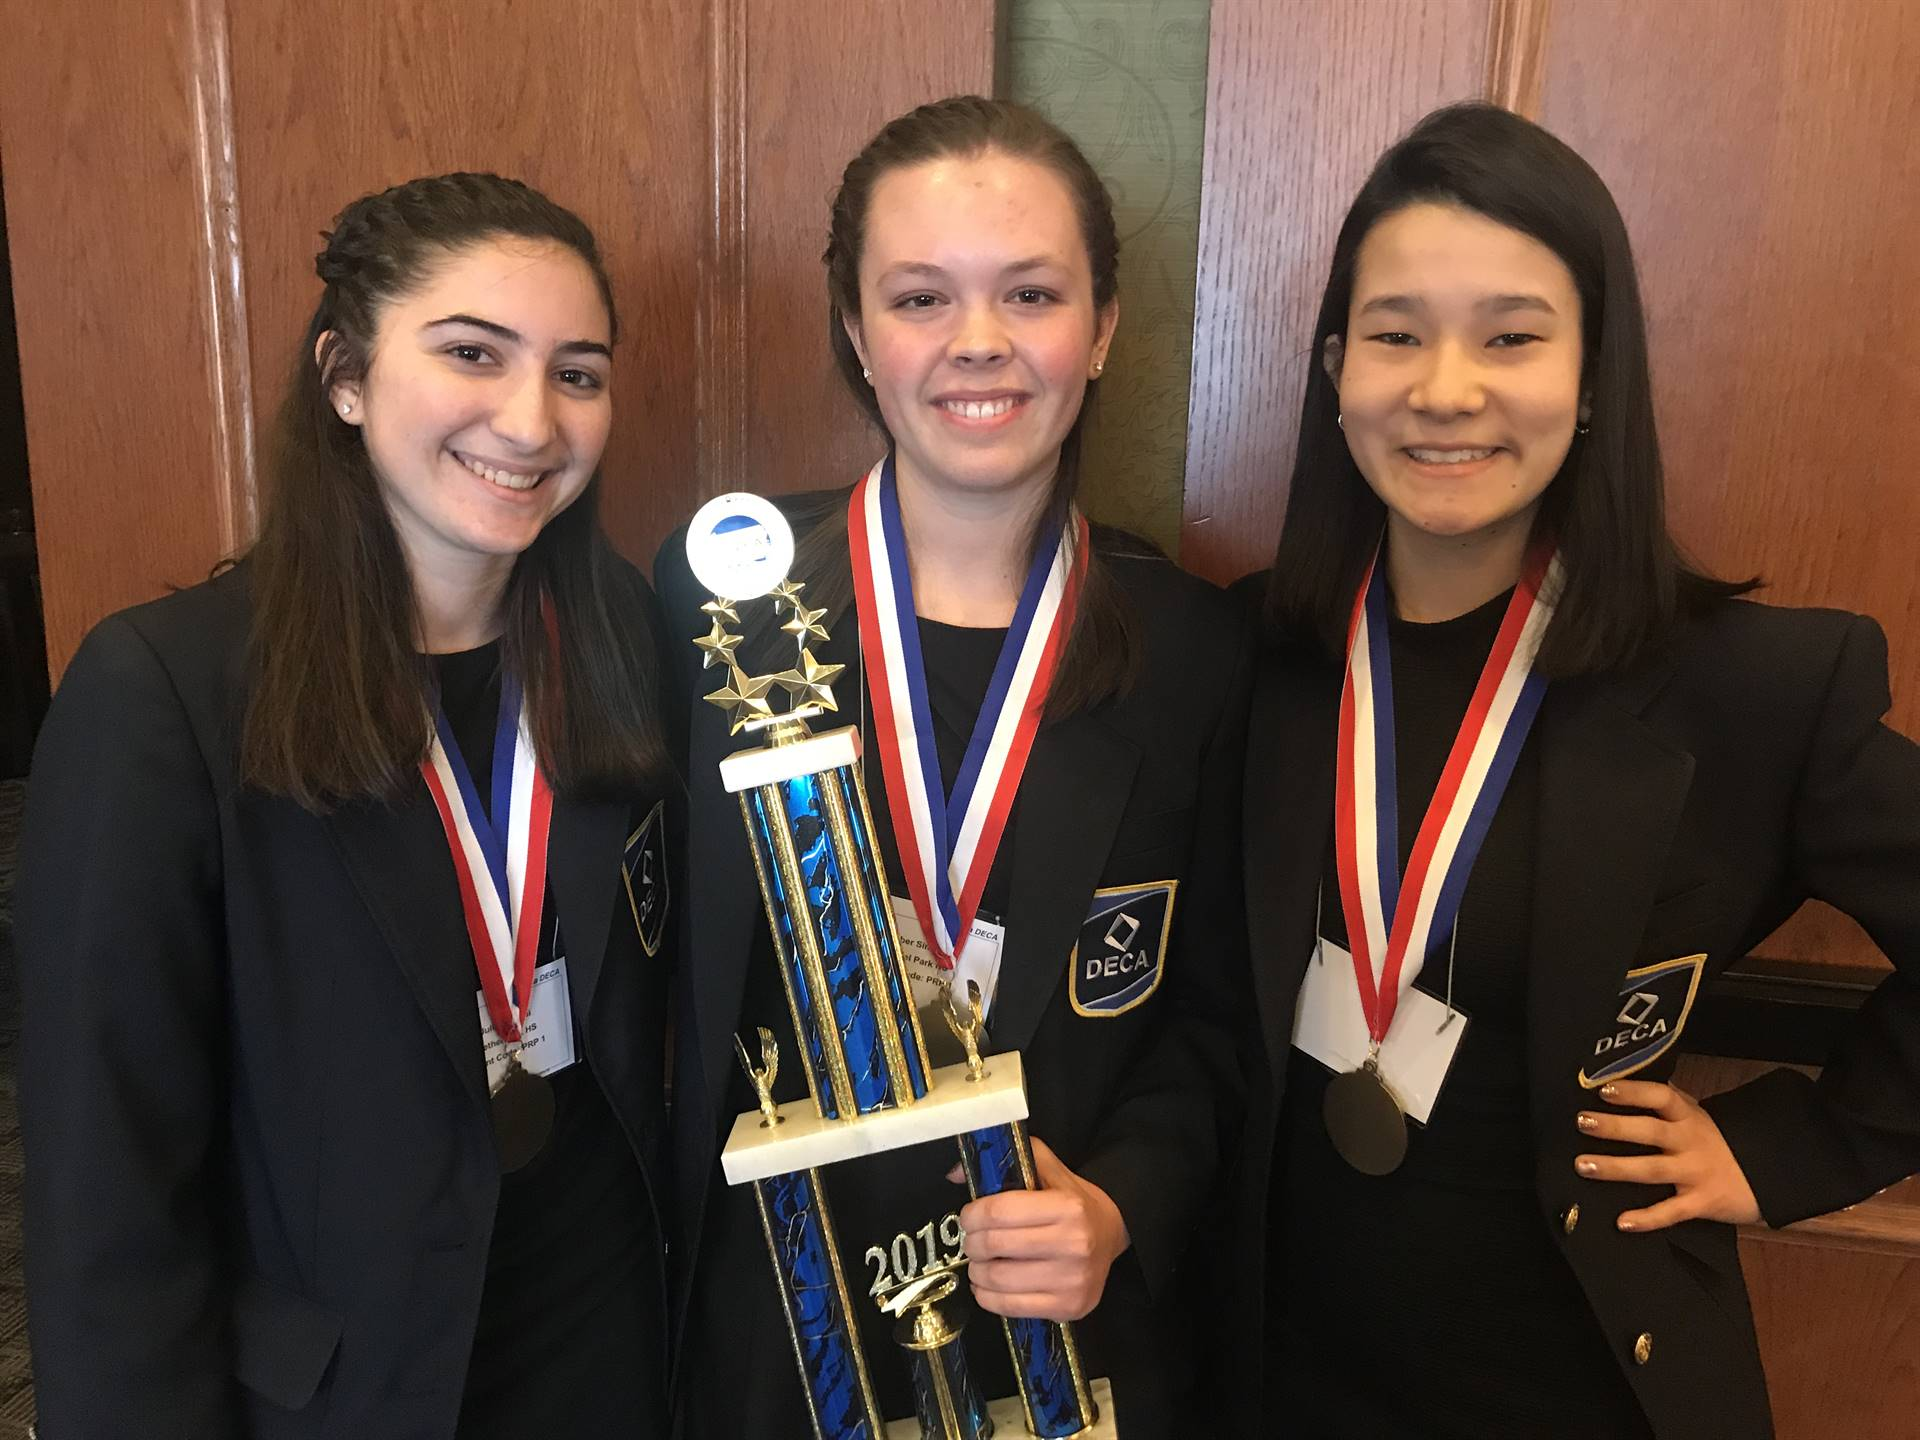 Three students with medals and trophy